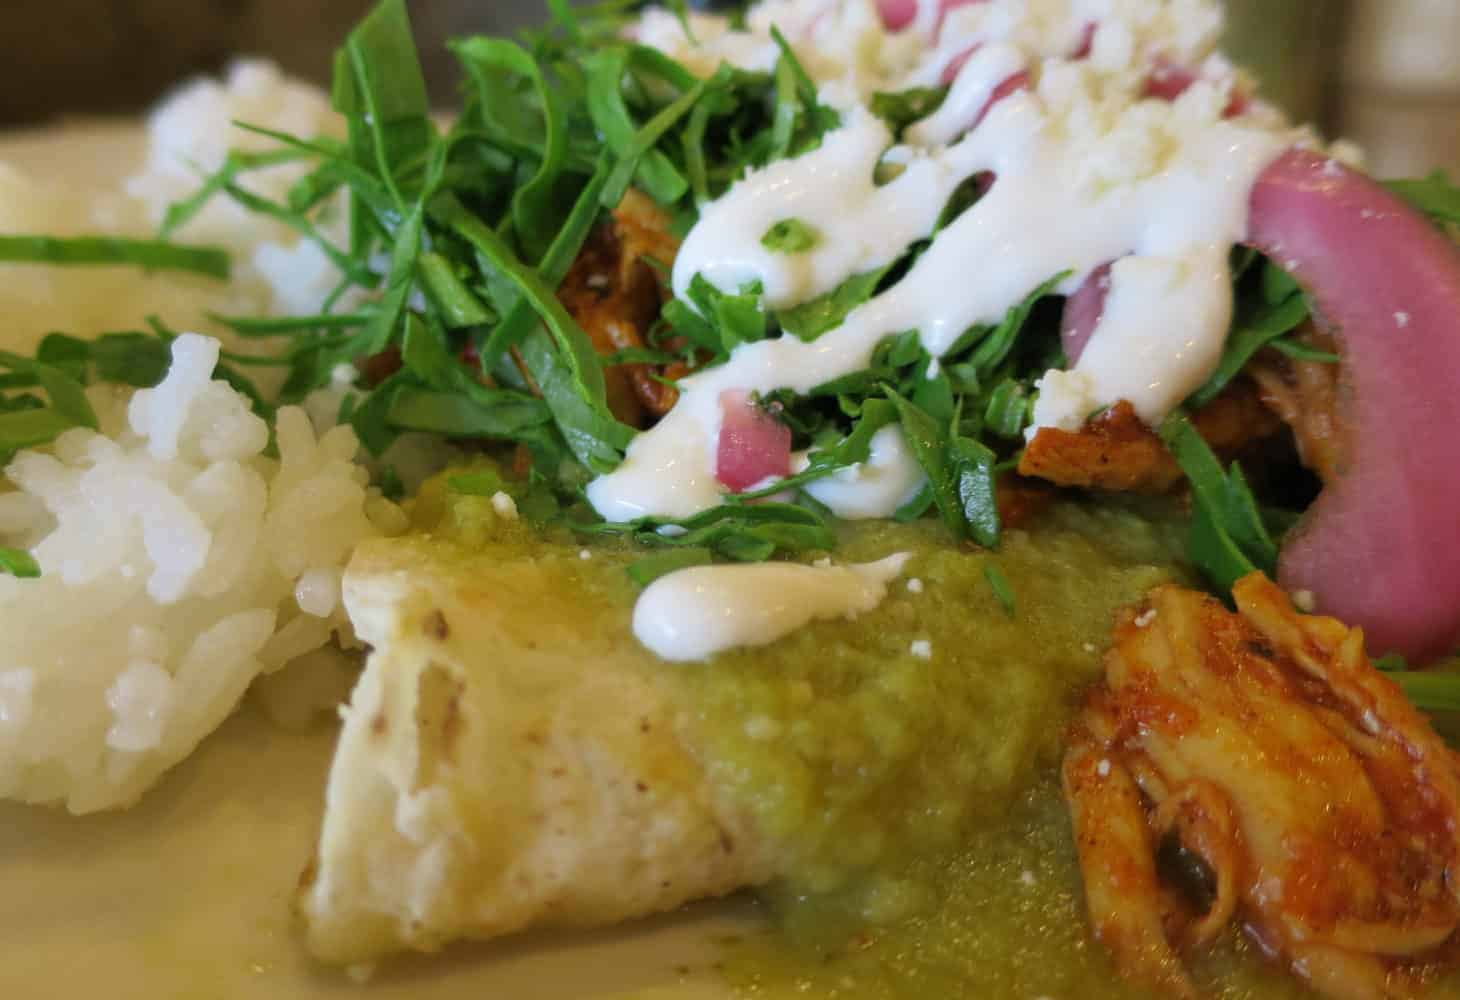 Enchiladas at Mazunte